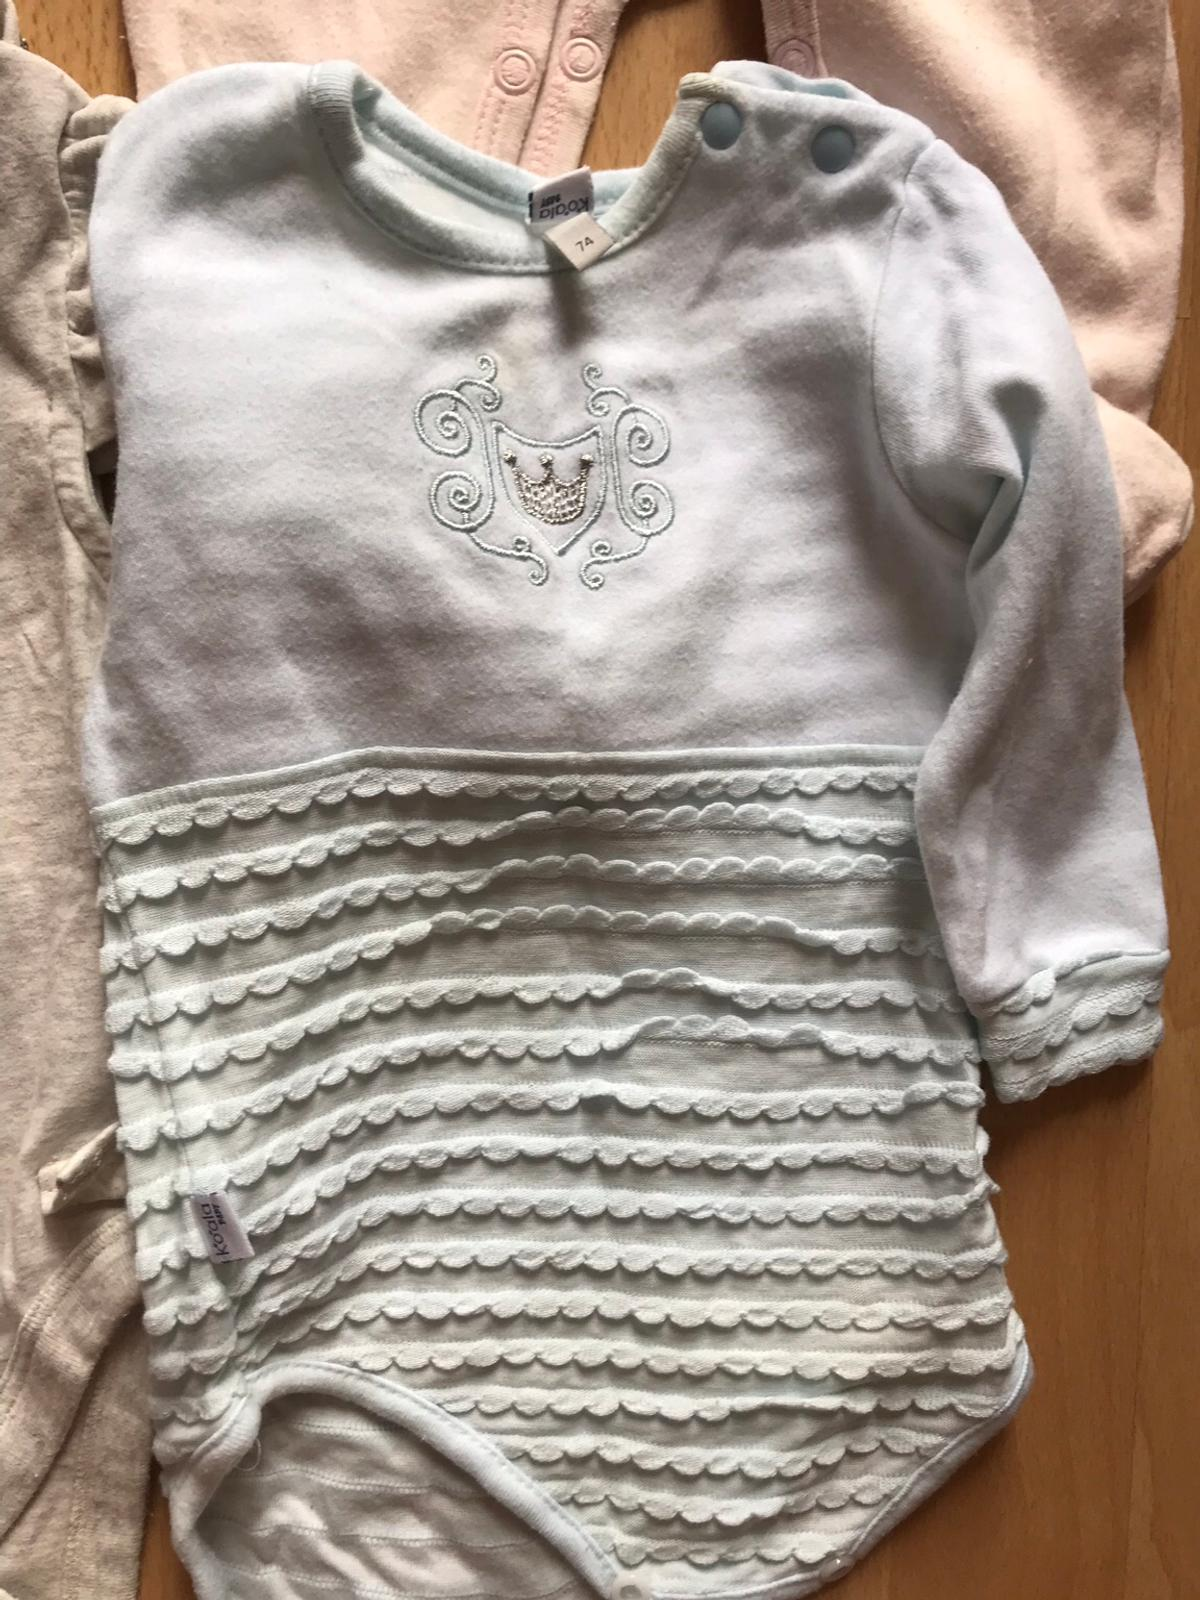 Baby clothes used from 3-6 months old